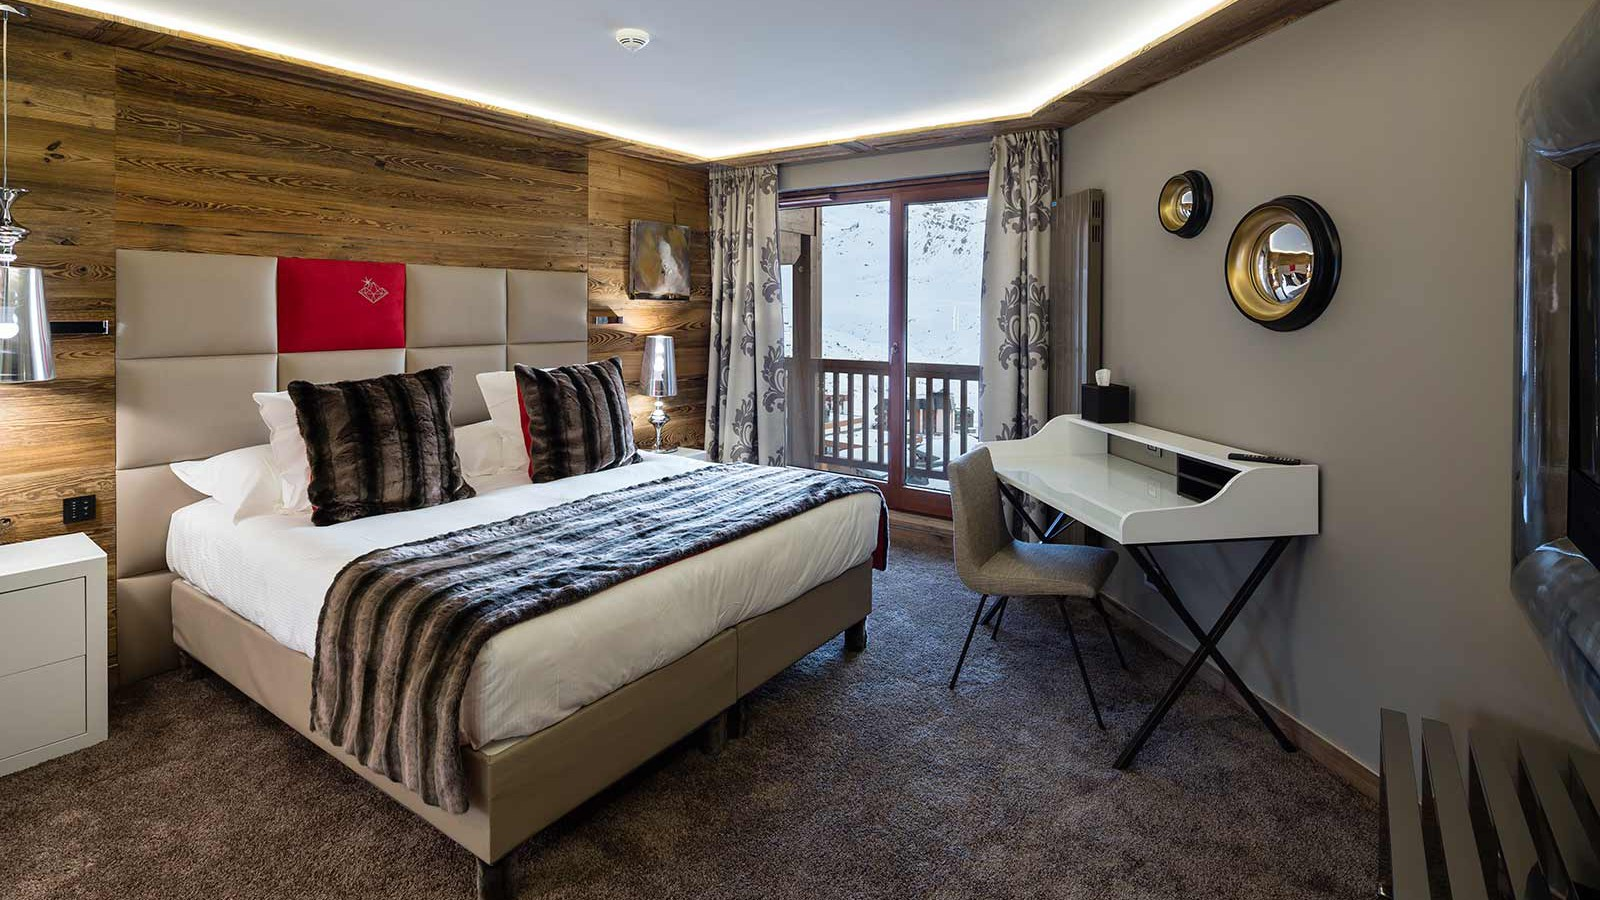 Hotel Koh-I Nor, Val Thorens -  Duo room 26m2